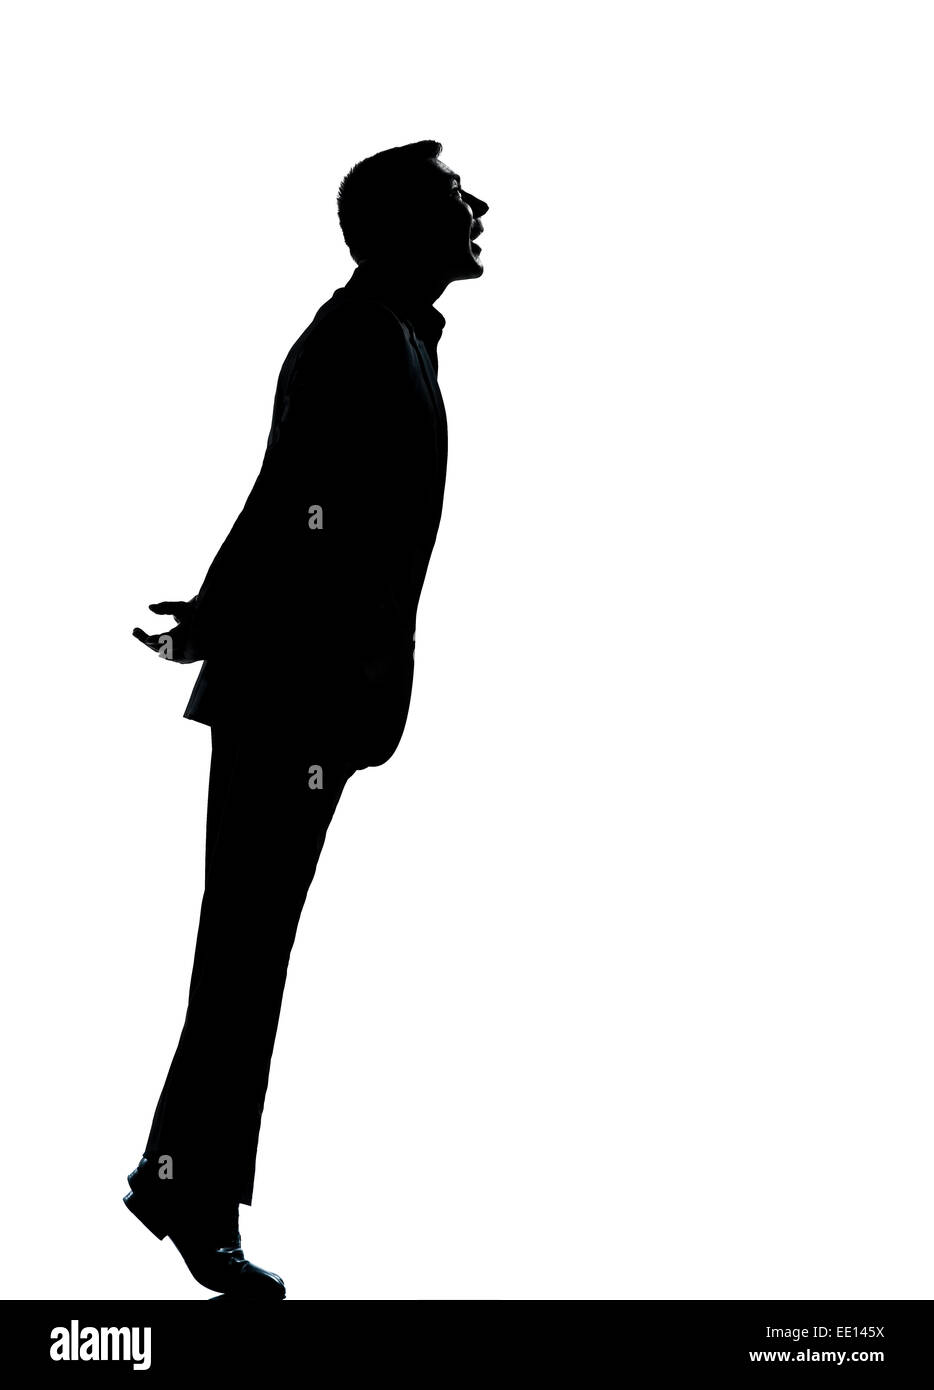 one caucasian business man silhouette standing tiptoe looking up Full length in studio isolated on white background - Stock Image